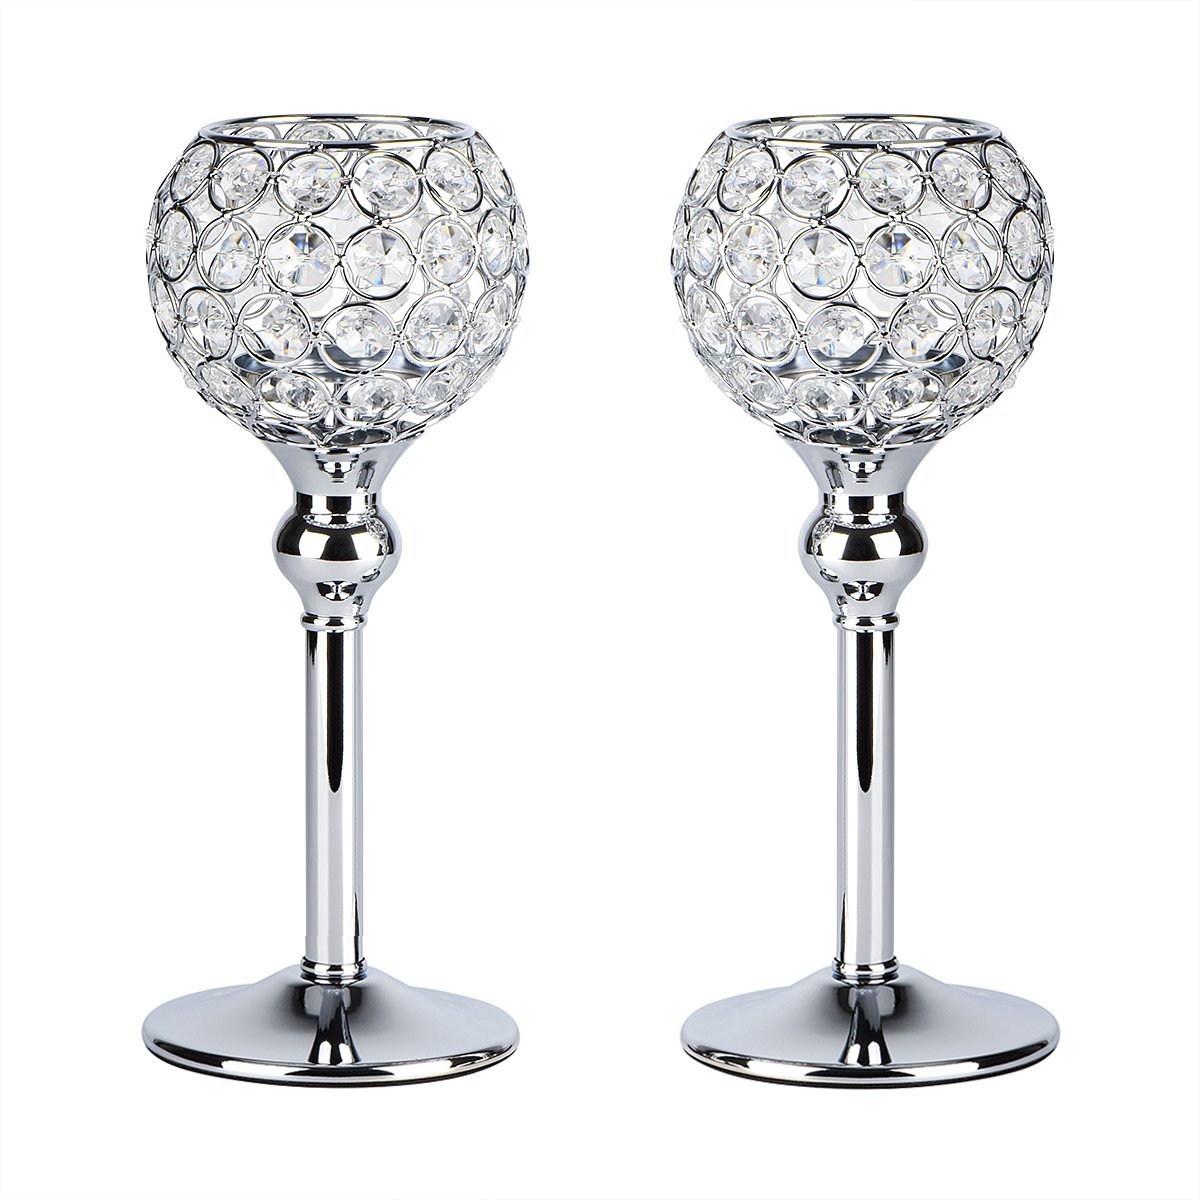 Autai 2pcs Silver Crystal Candle Holder for Wedding Centerpieces Candlesticks Birthday Party Dining Table Candlelight Home Decoration